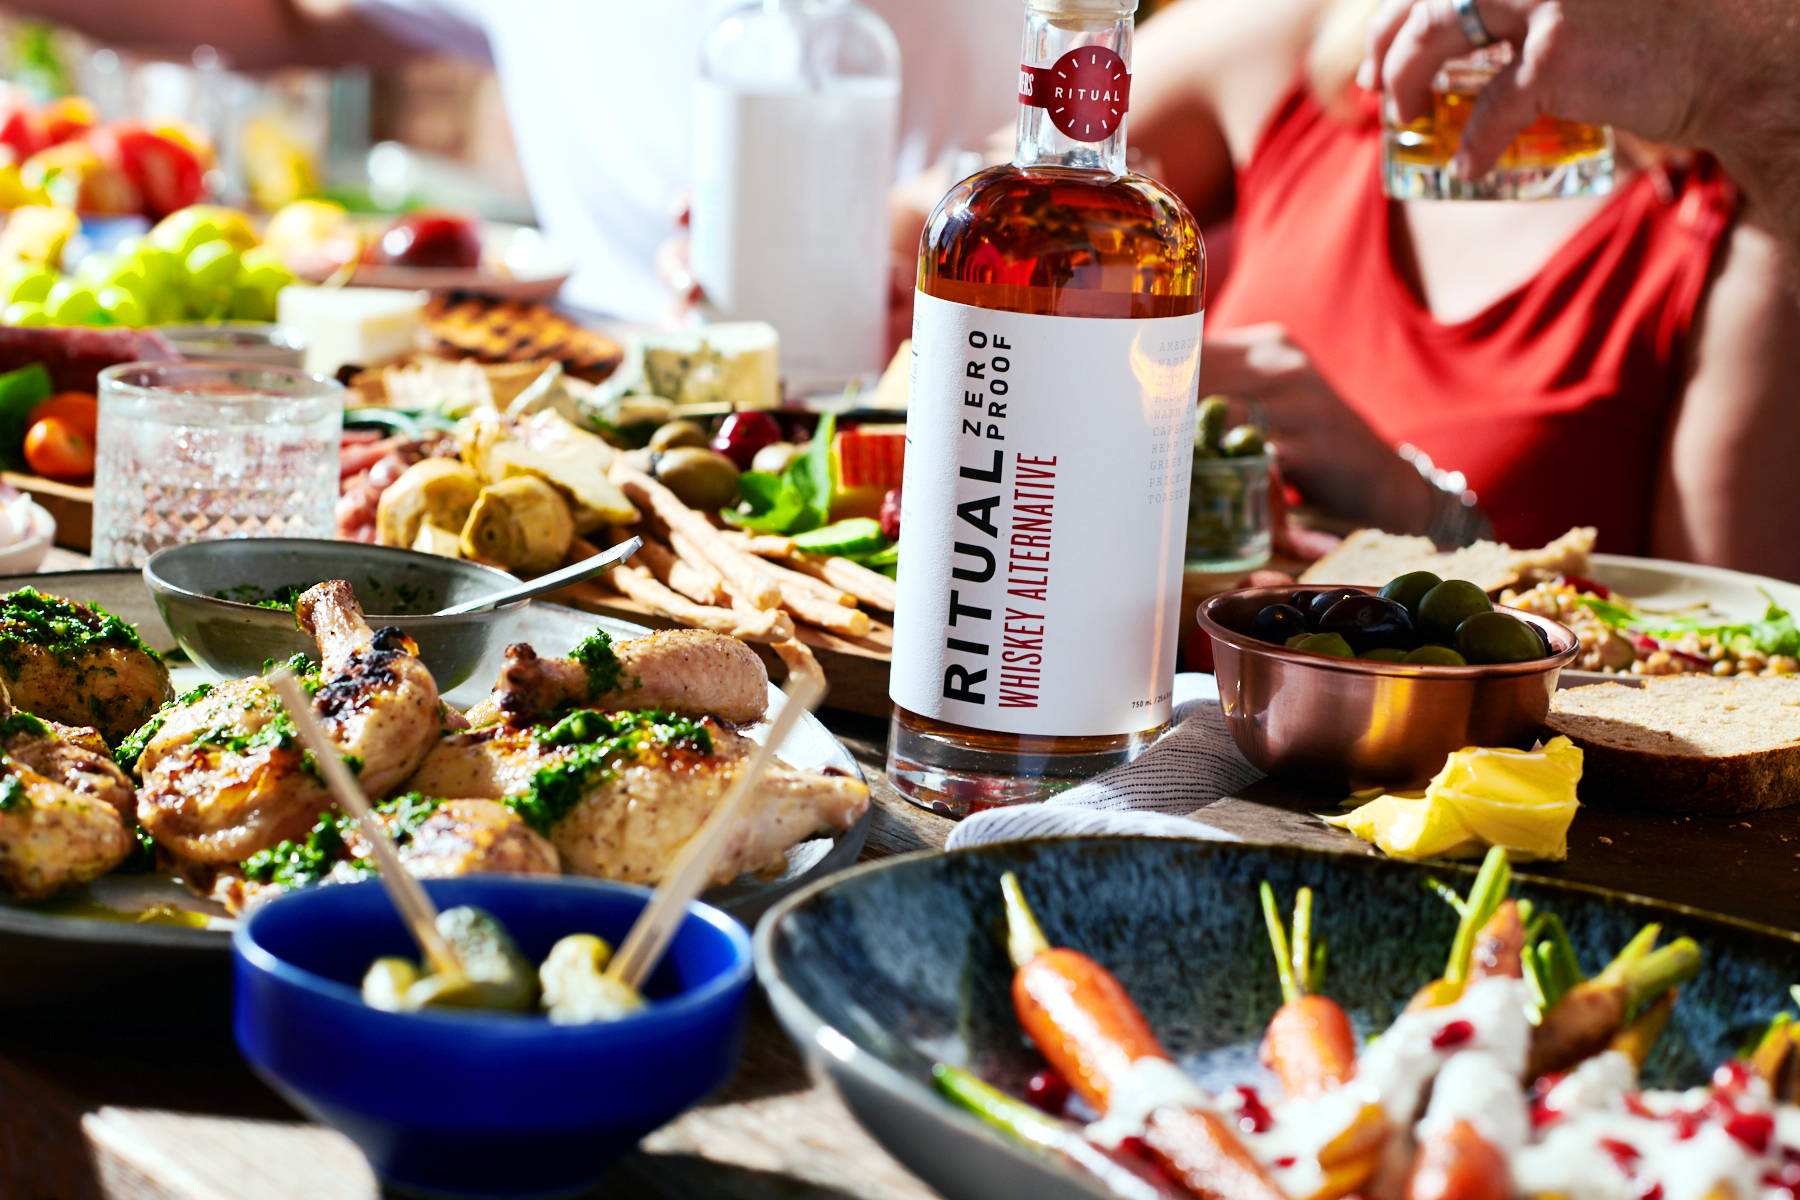 A bottle of Ritual non-alcoholic whiskey alternative on a dinner table along with chicken, olives and mocktails